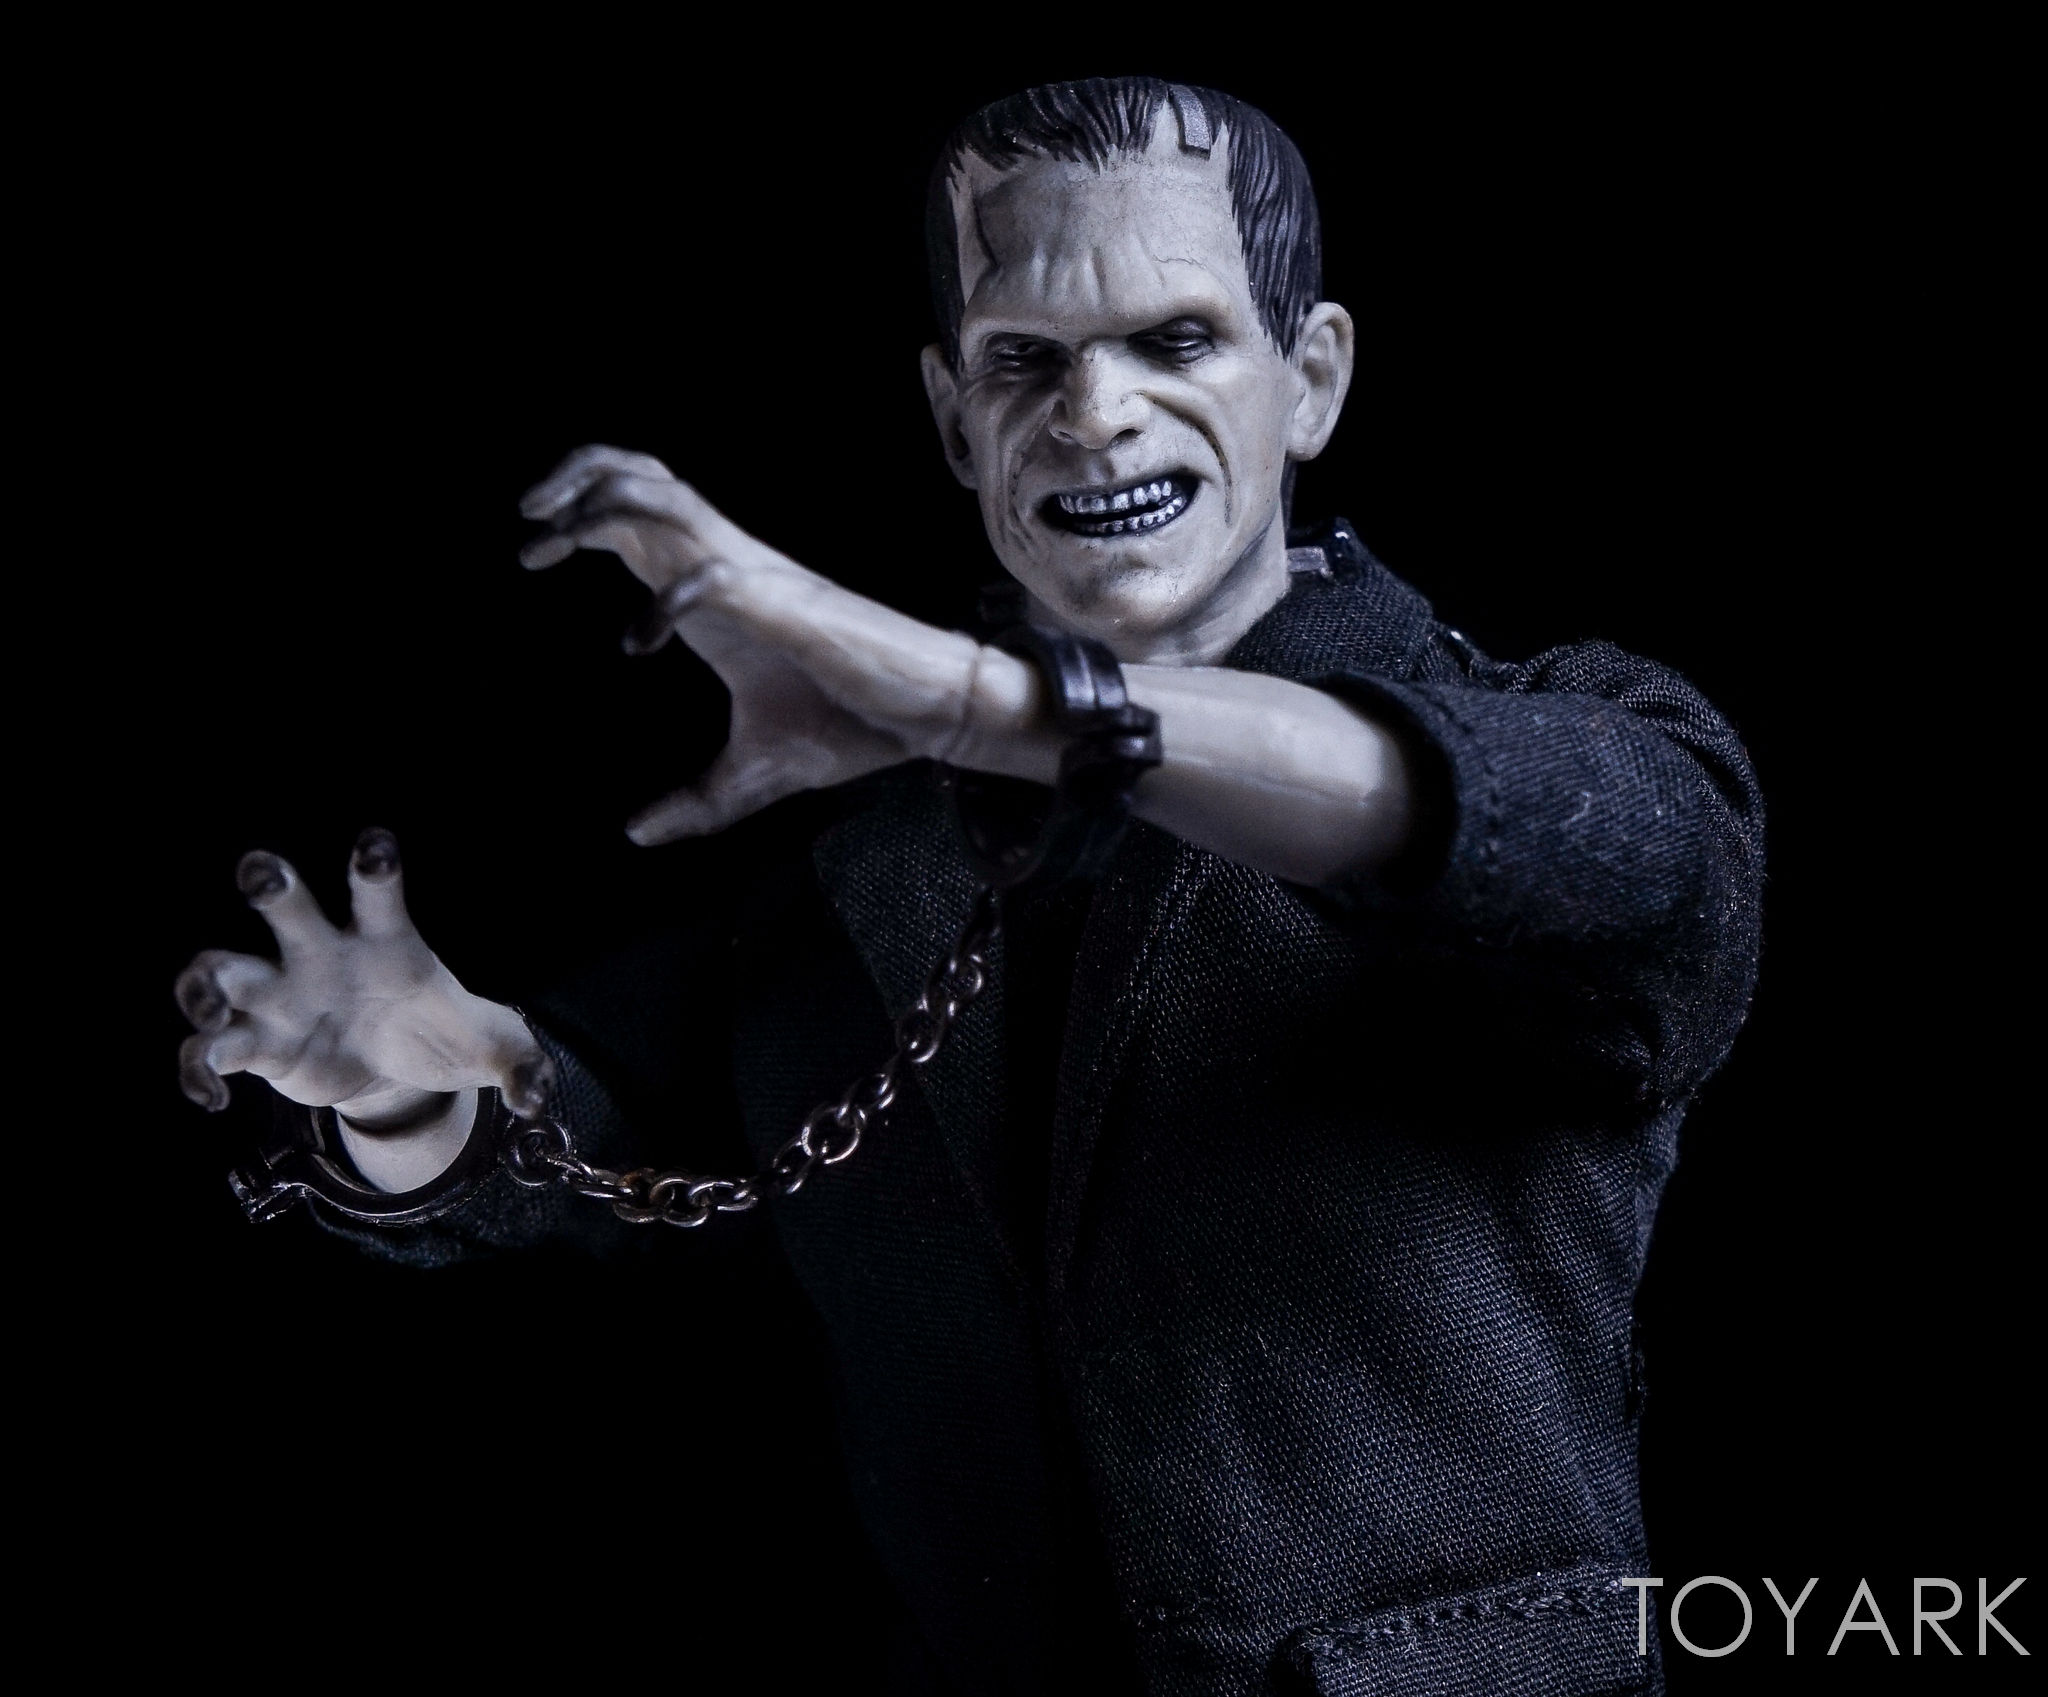 http://news.toyark.com/wp-content/uploads/sites/4/2016/12/Mezco-One12-Collective-Frankenstein-Figure-029.jpg